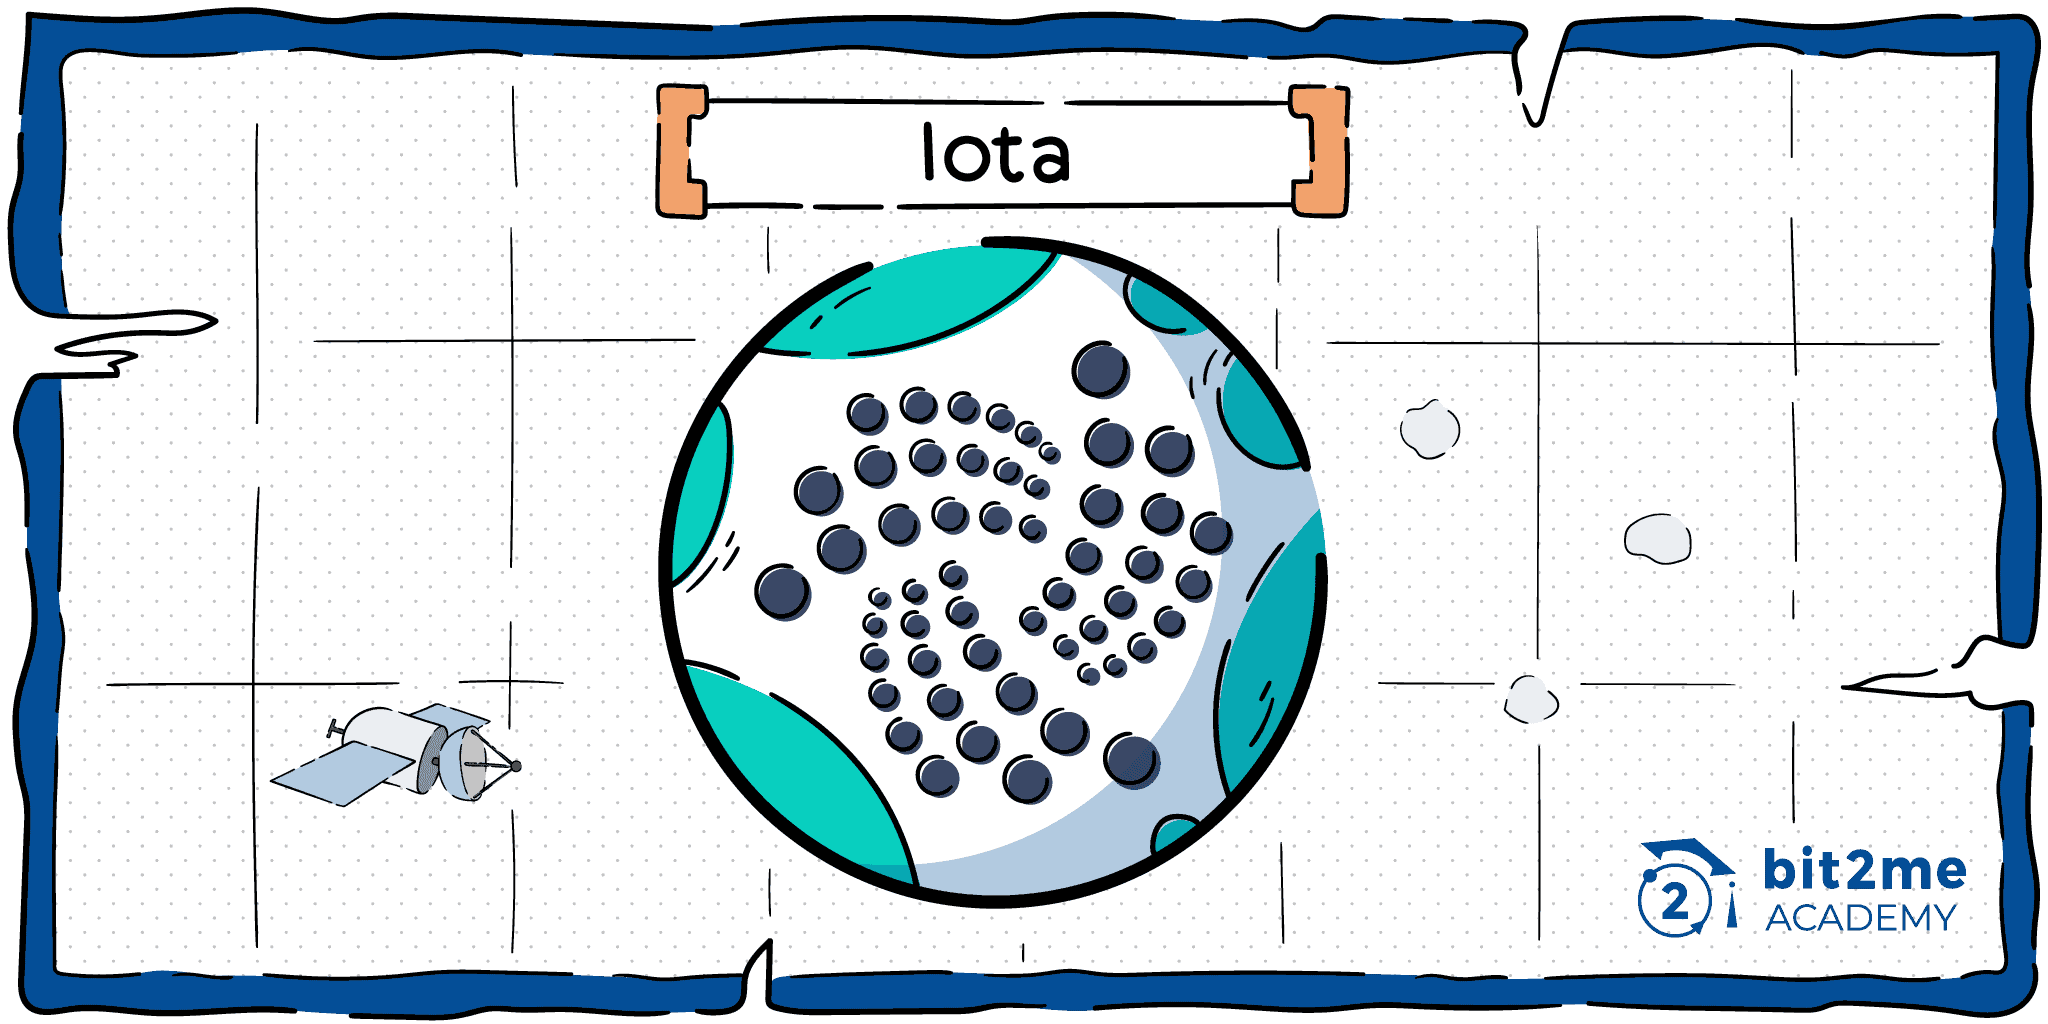 IOTA the blockchain for the IoT, IOTA a high speed network for the IoT